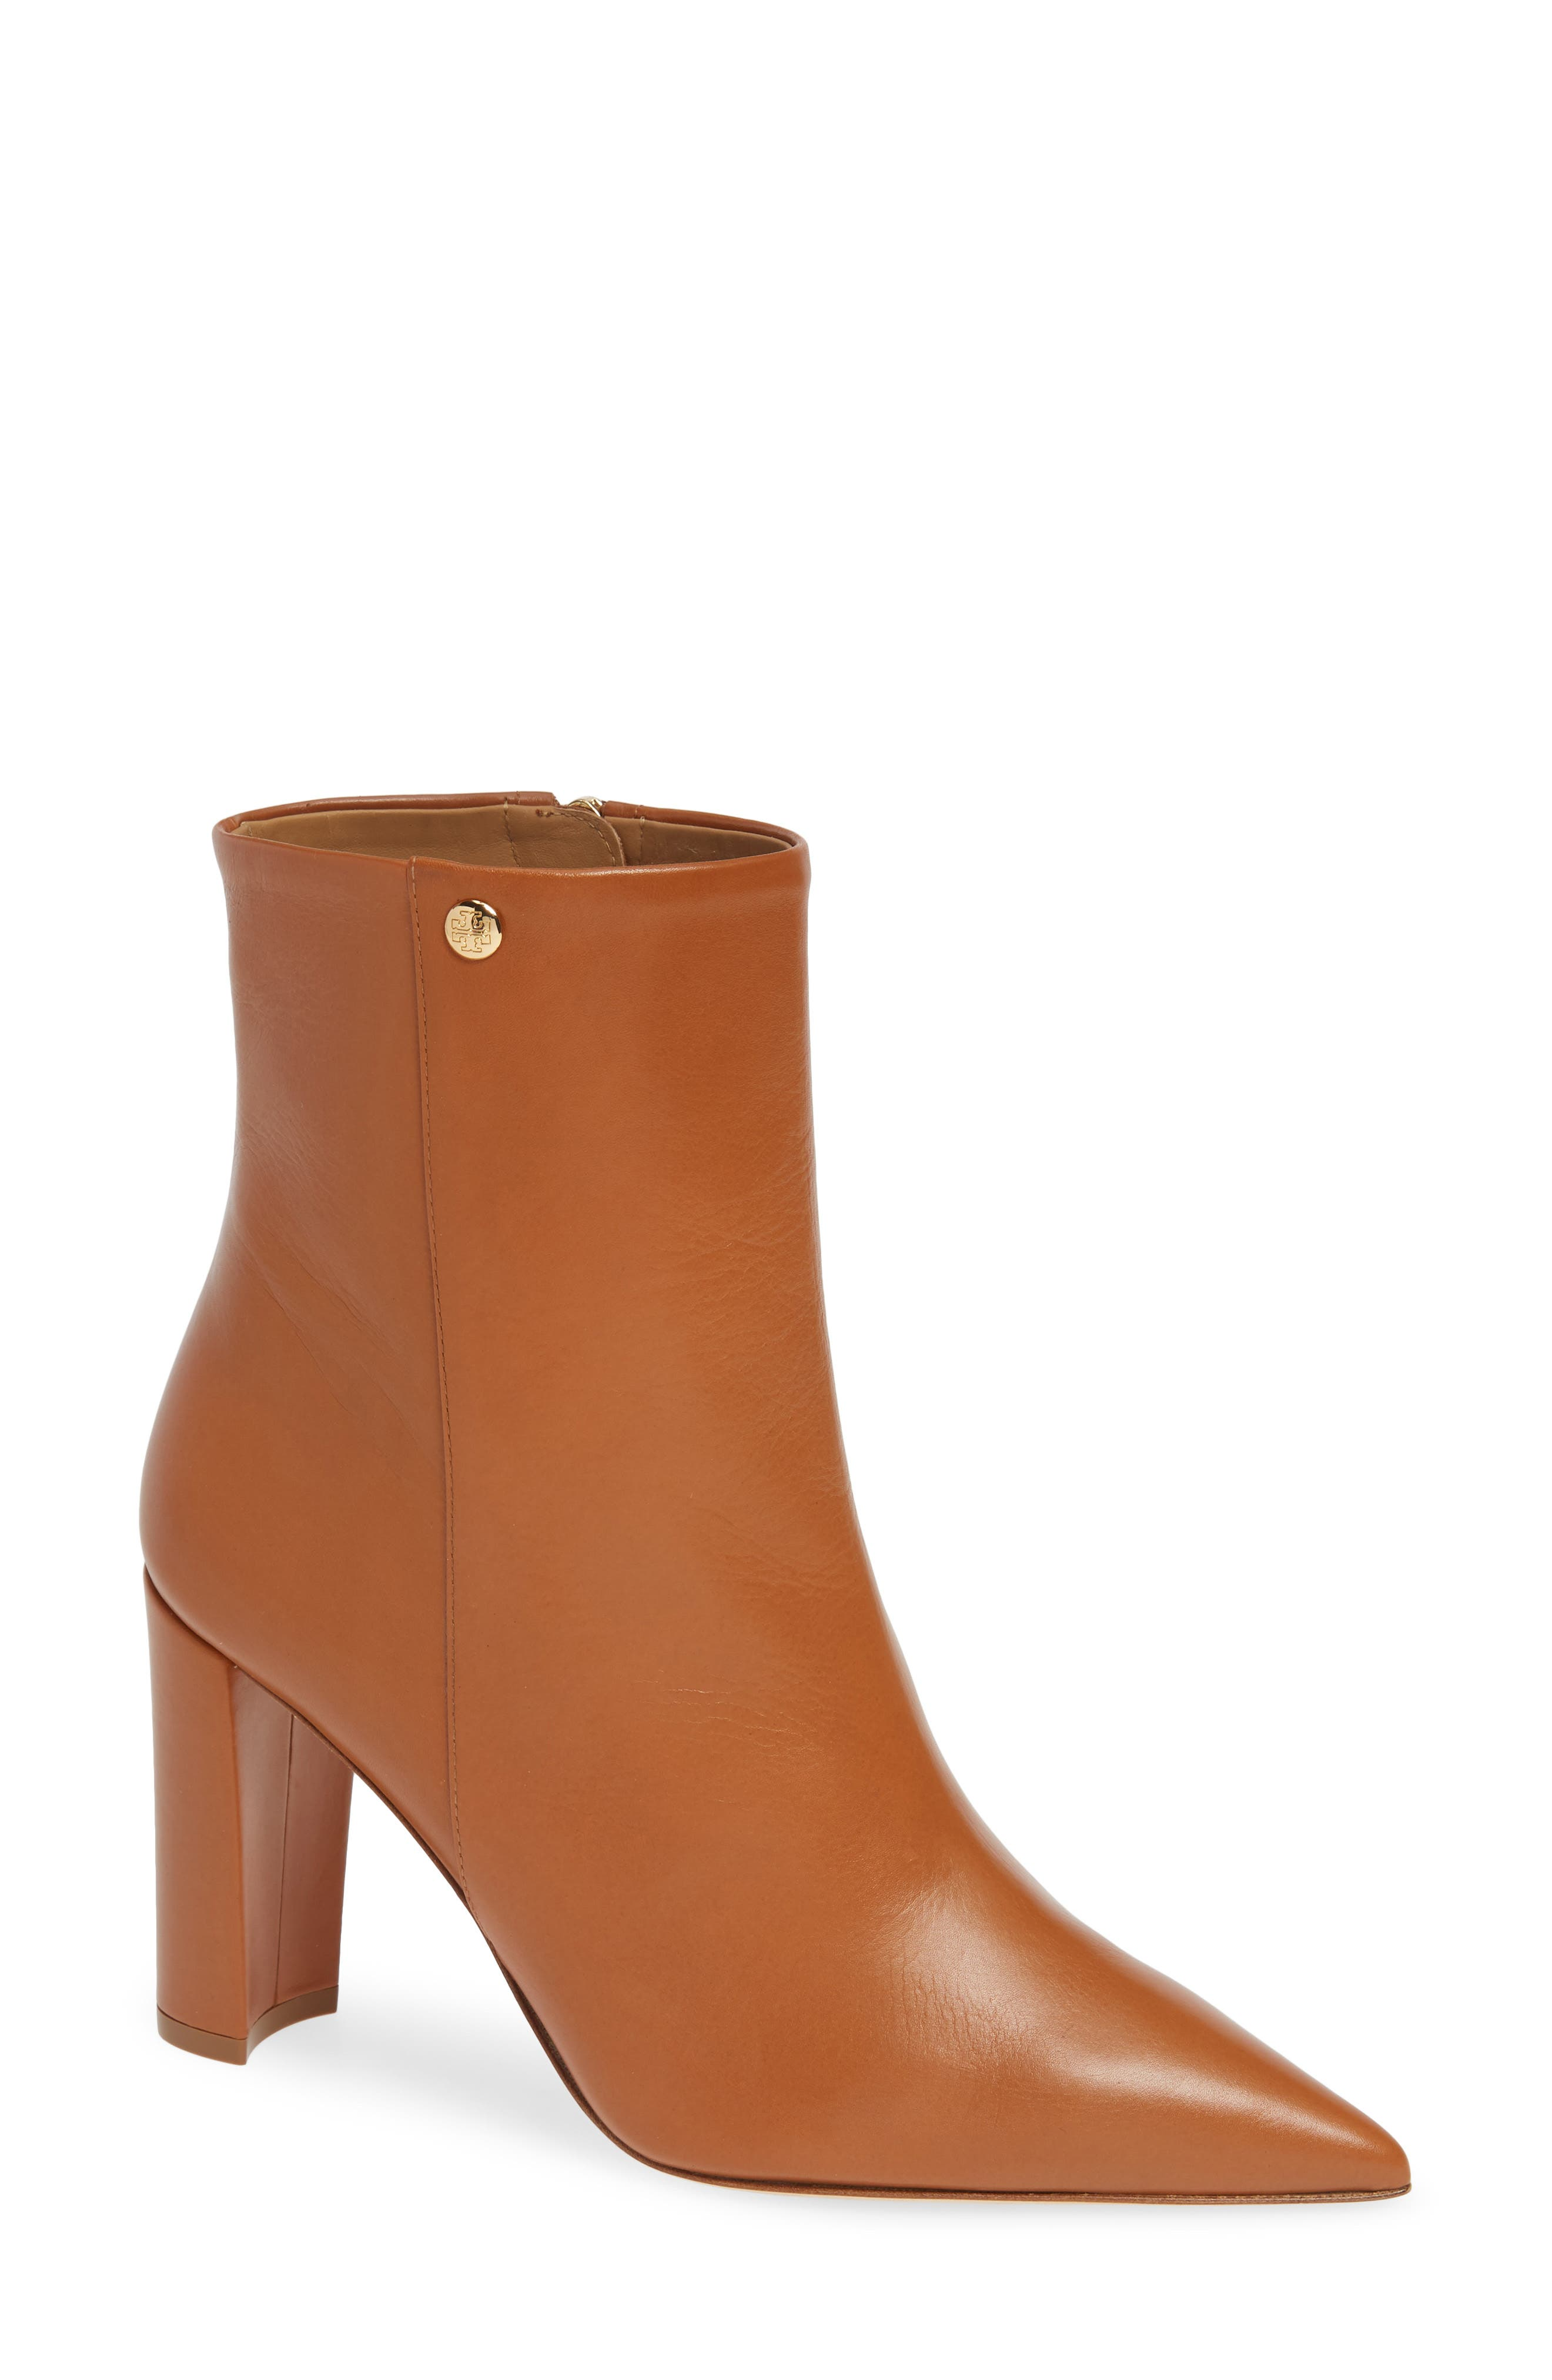 b64e7b8334573 Women s Tory Burch Booties   Ankle Boots